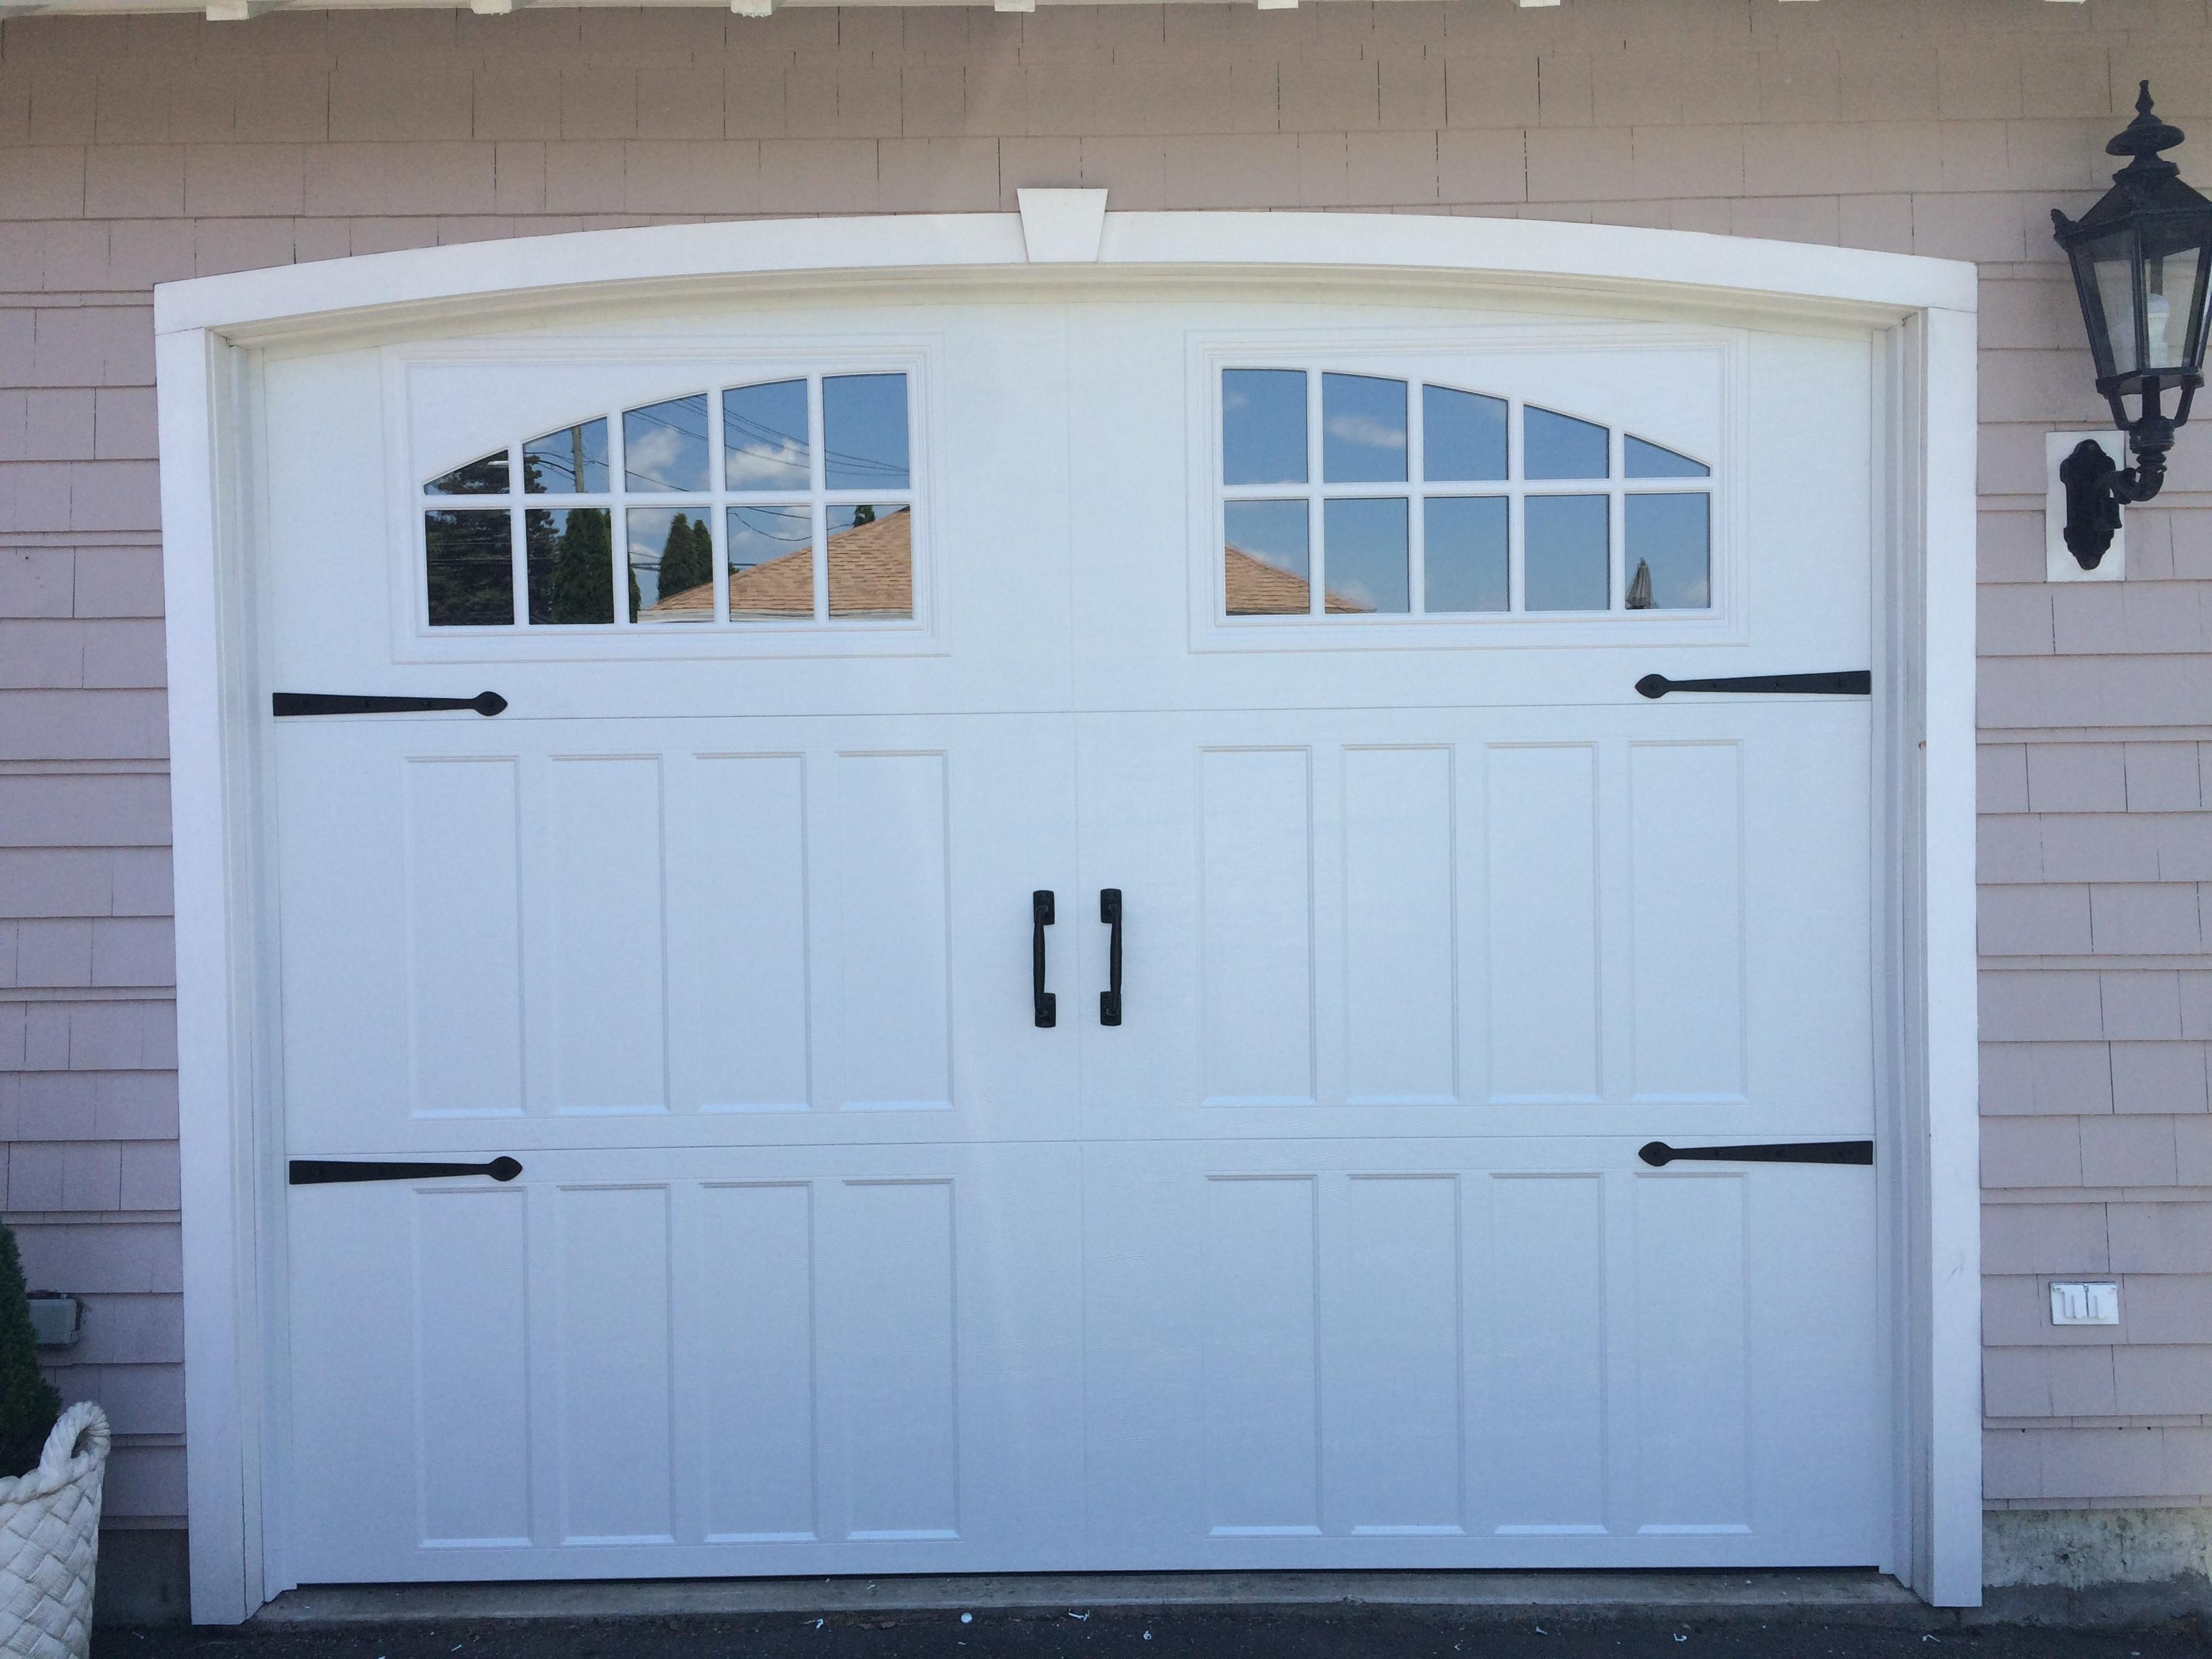 2448 #40628B Overhead Doors Solutions In West Haven CT 06516 ChamberofCommerce  image Overhead Garage Doors Residential Reviews 37133264